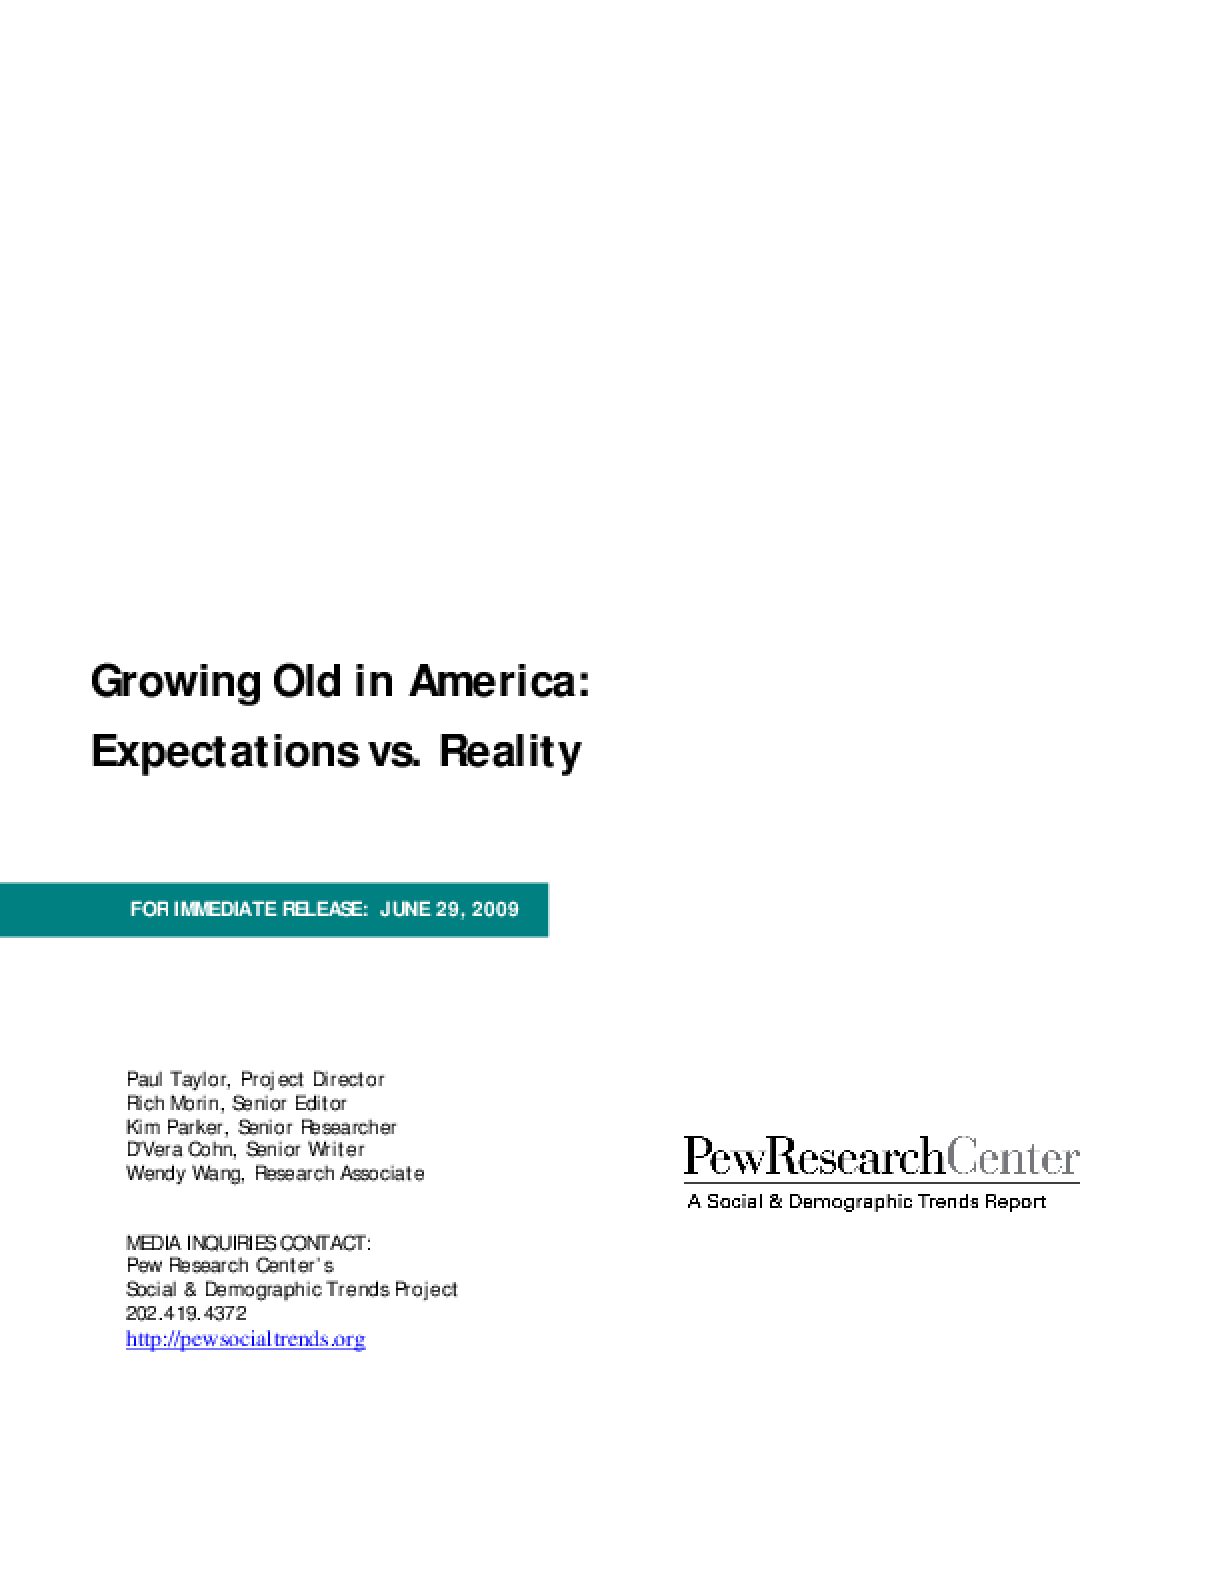 Growing Old in America: Expectations vs. Reality